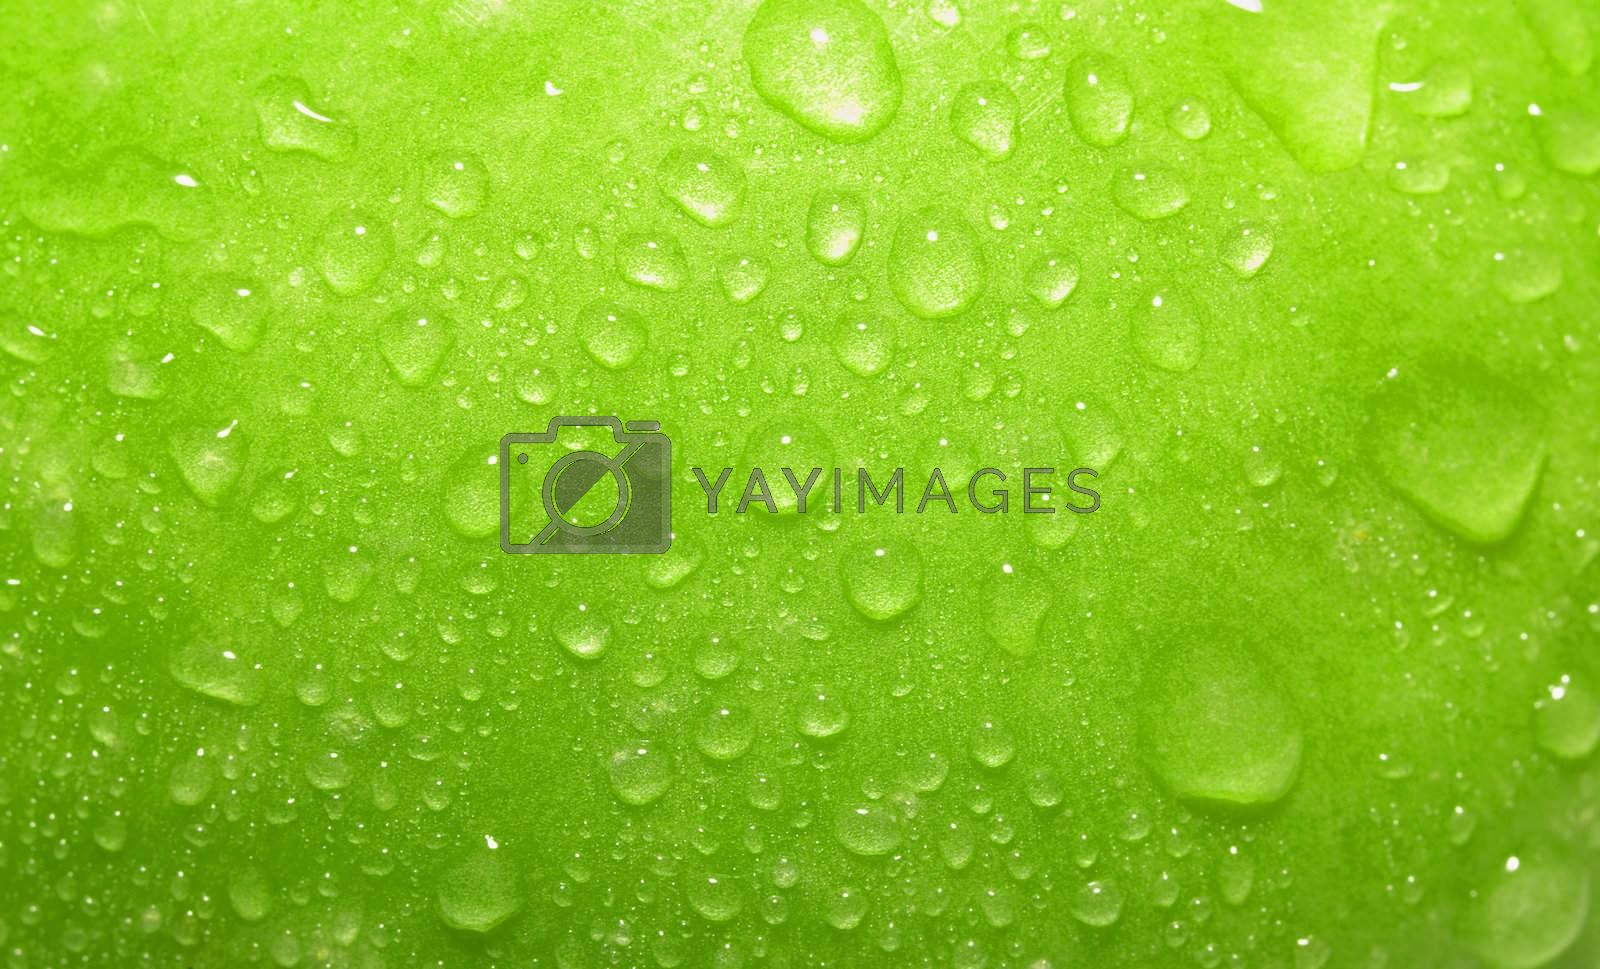 Royalty free image of Close-up green apple with waterdrops by DeusNoxious